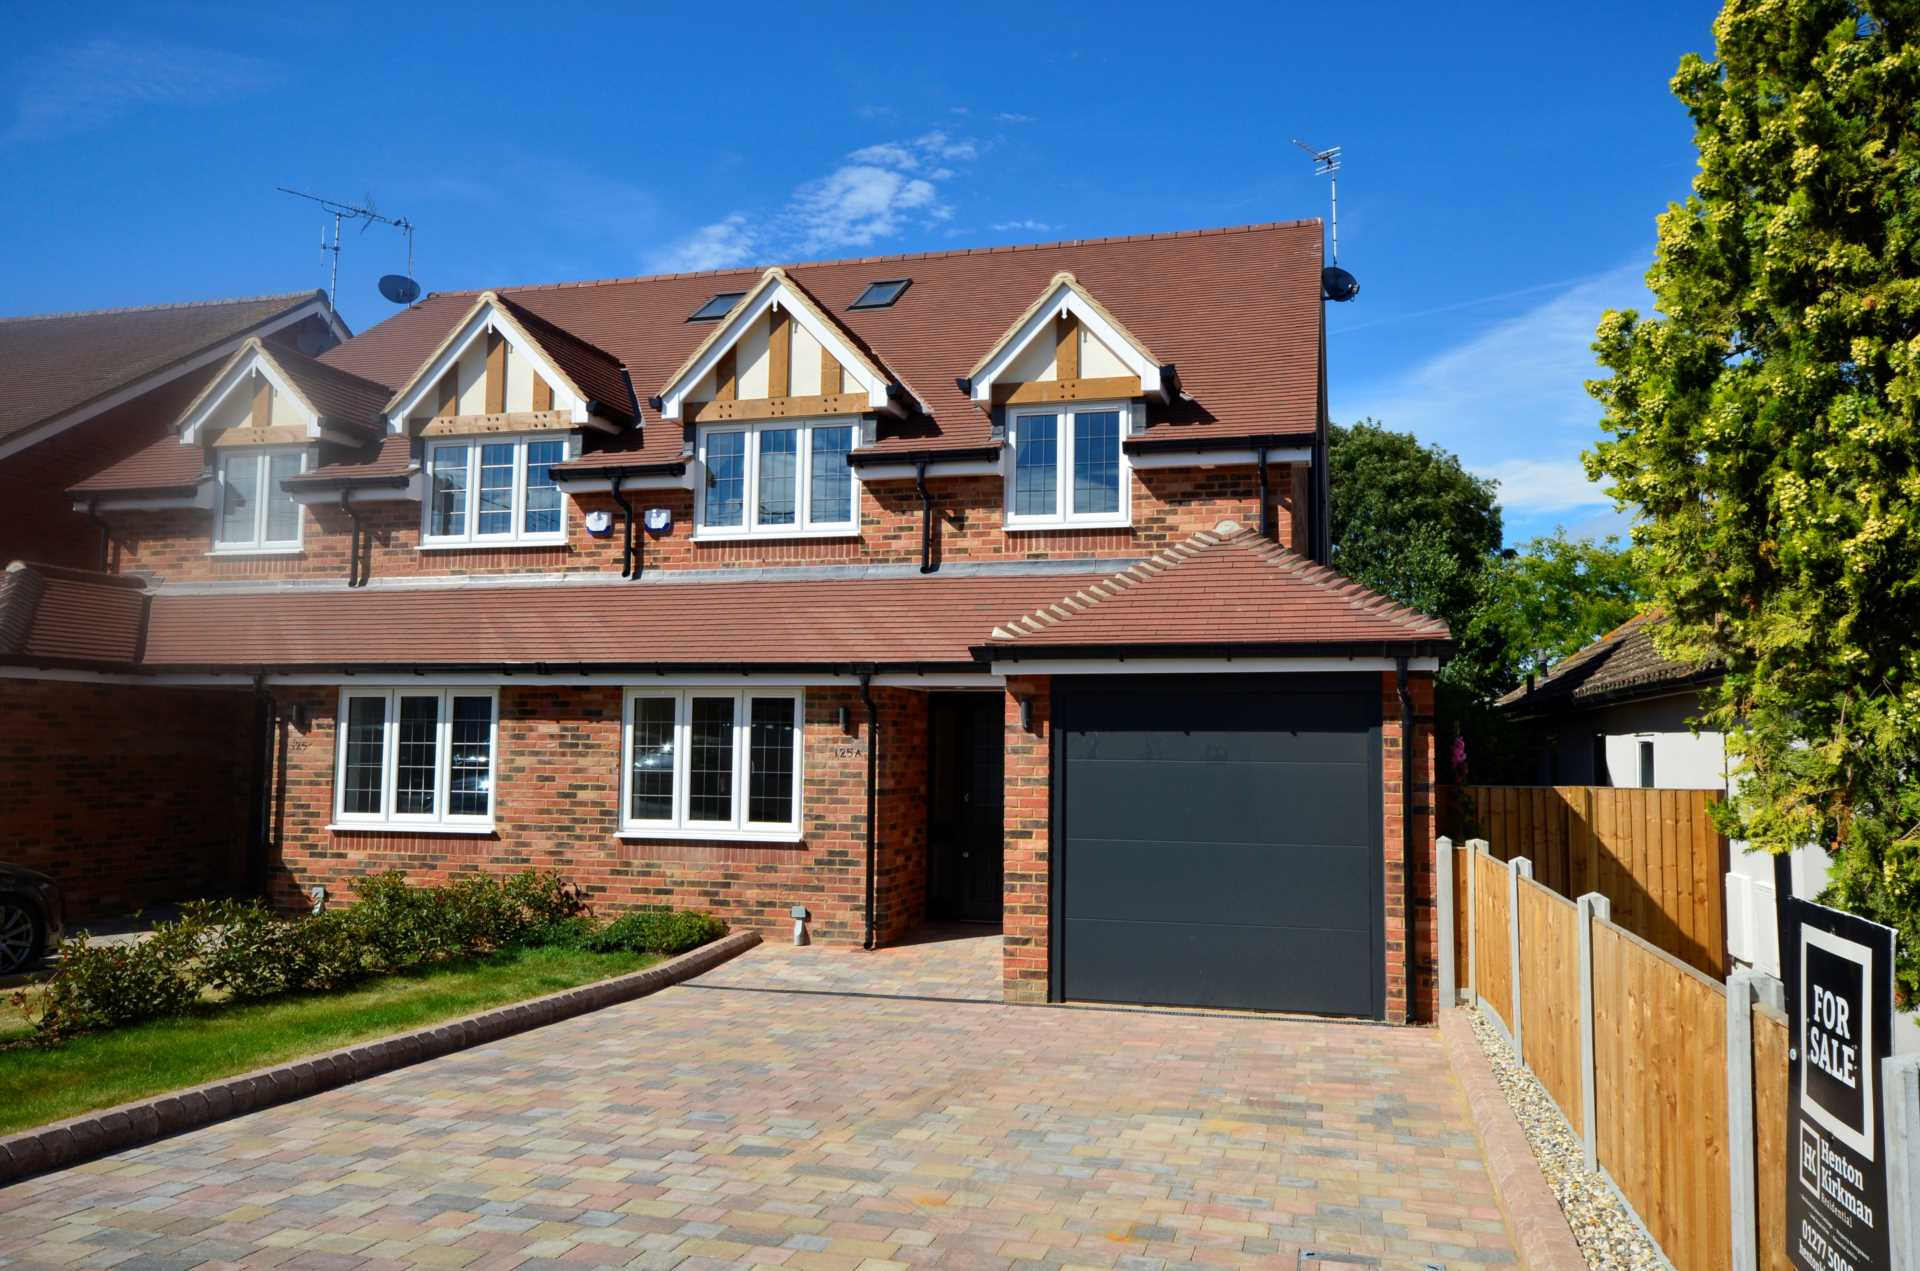 Norsey View Drive, Billericay, Image 1